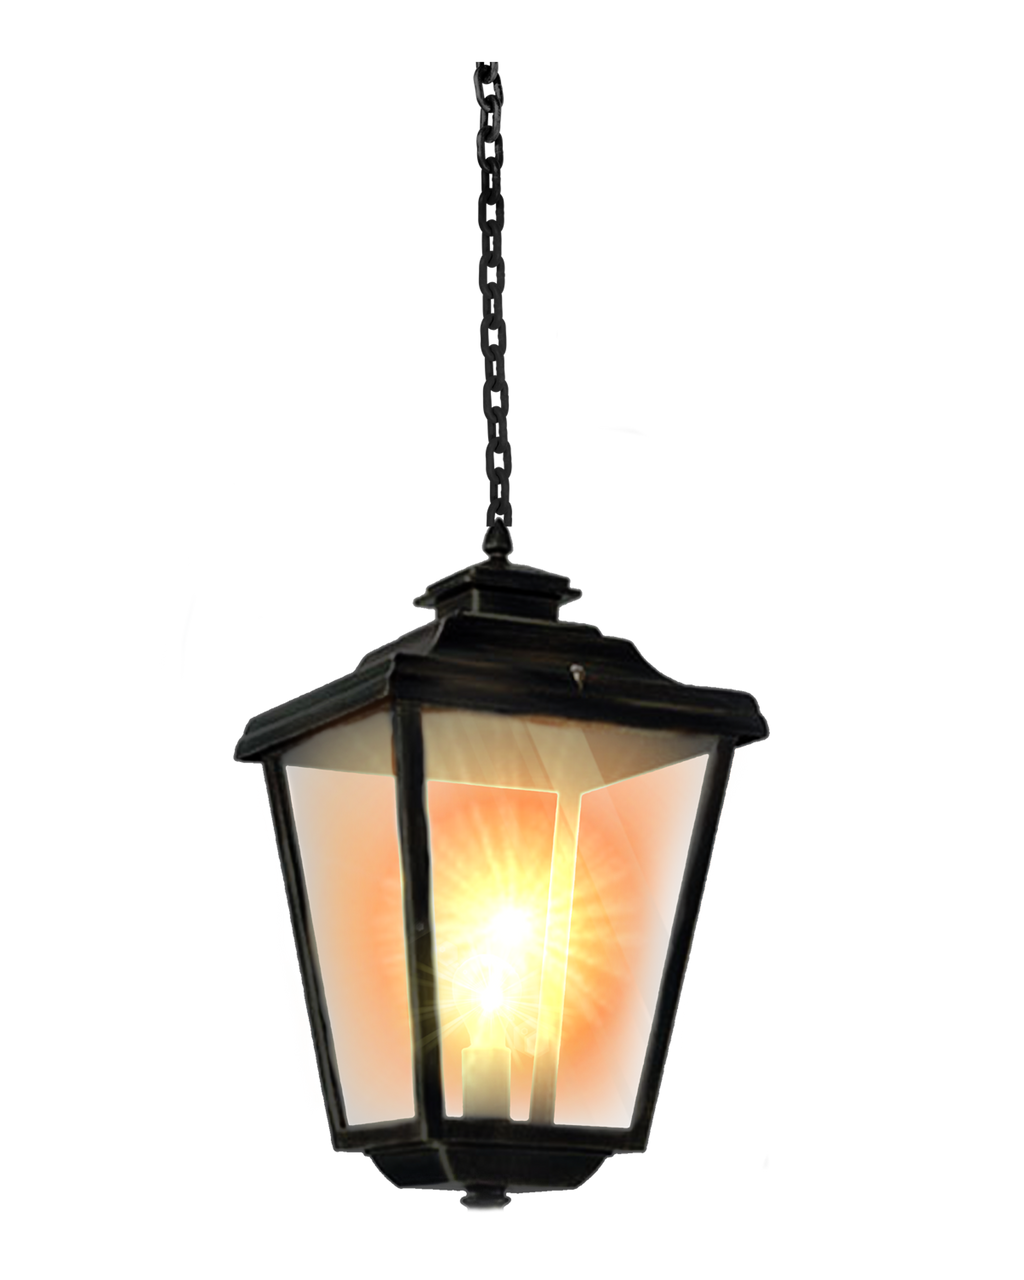 Hanging Lamp Png 1 by Moonglowlilly